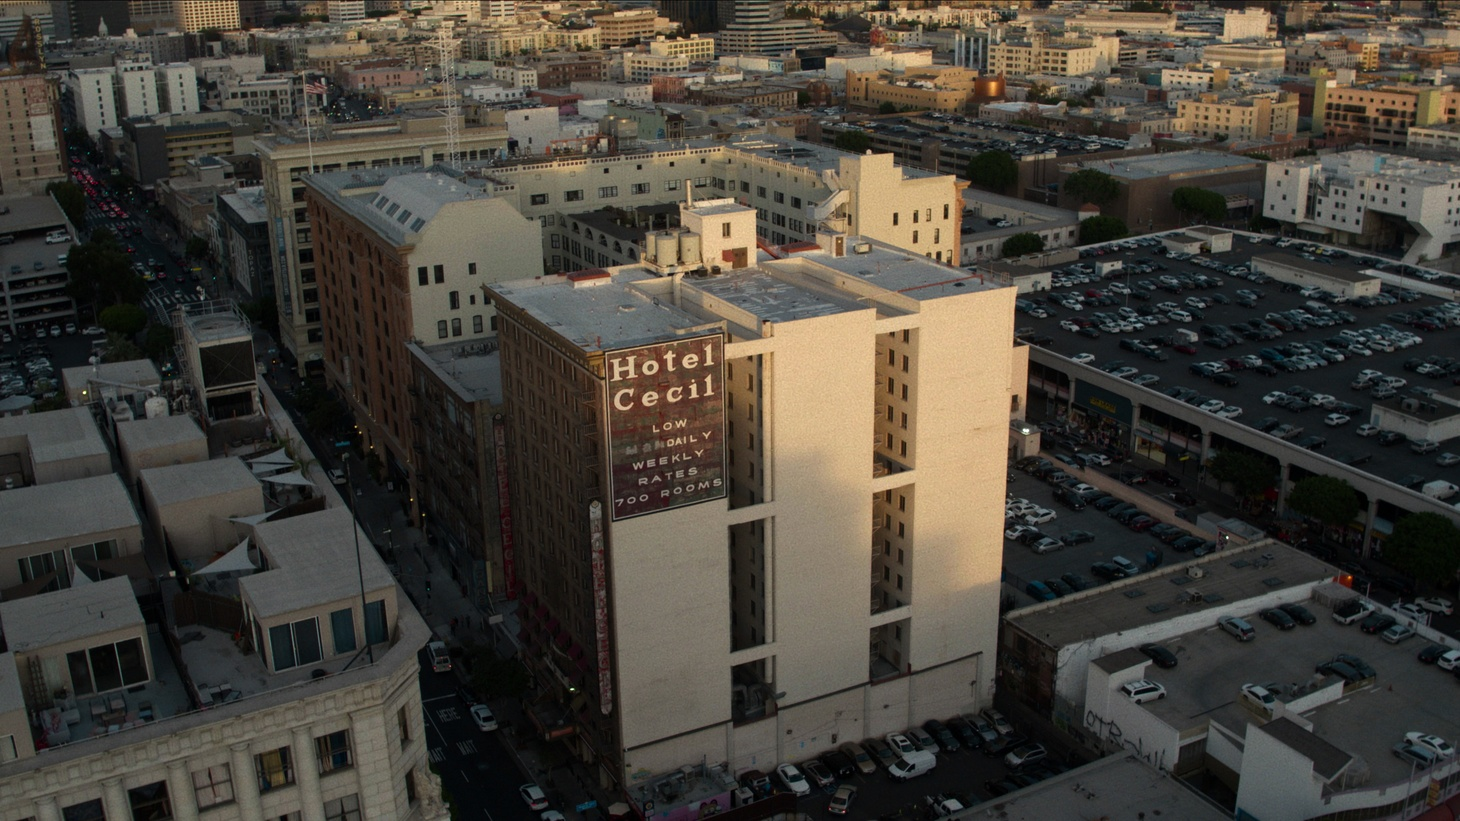 A new crime docuseries centers on downtown LA's Cecil Hotel and what led to the death of Canadian-born Elisa Lam there.